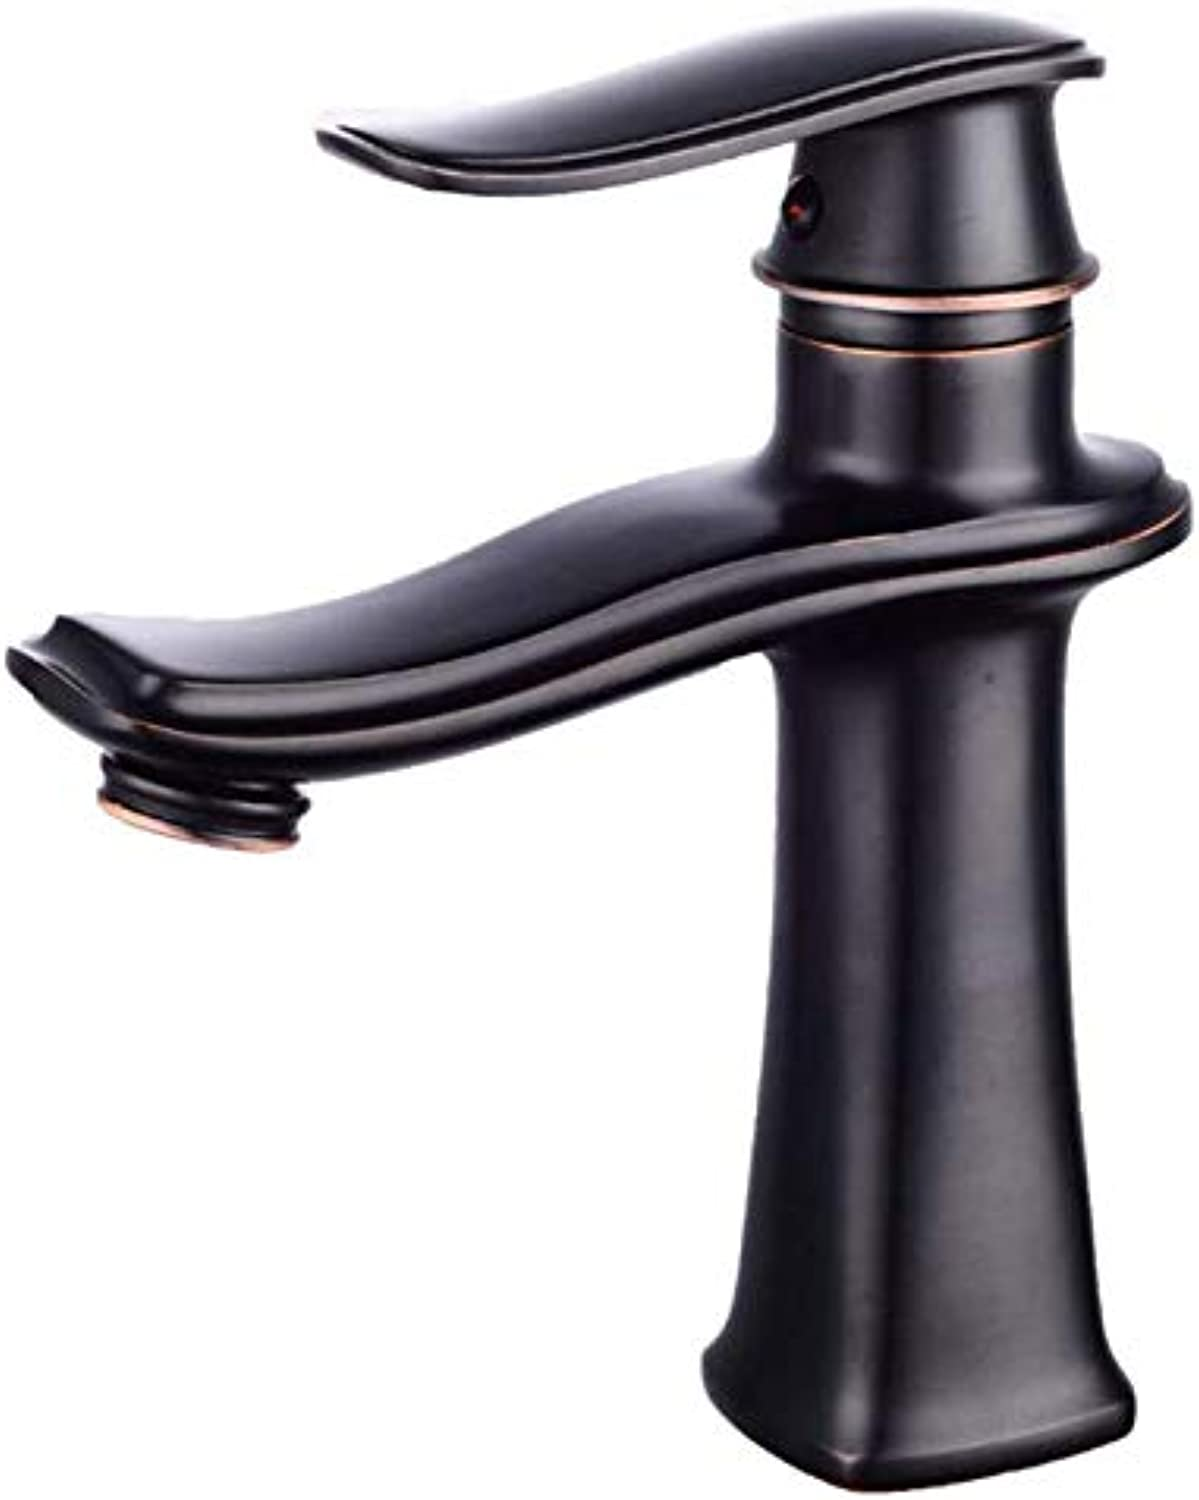 Exquisite Modern Bathroom Sink Black Faucet Single Handle Hot and Cold Faucet Creative Faucet